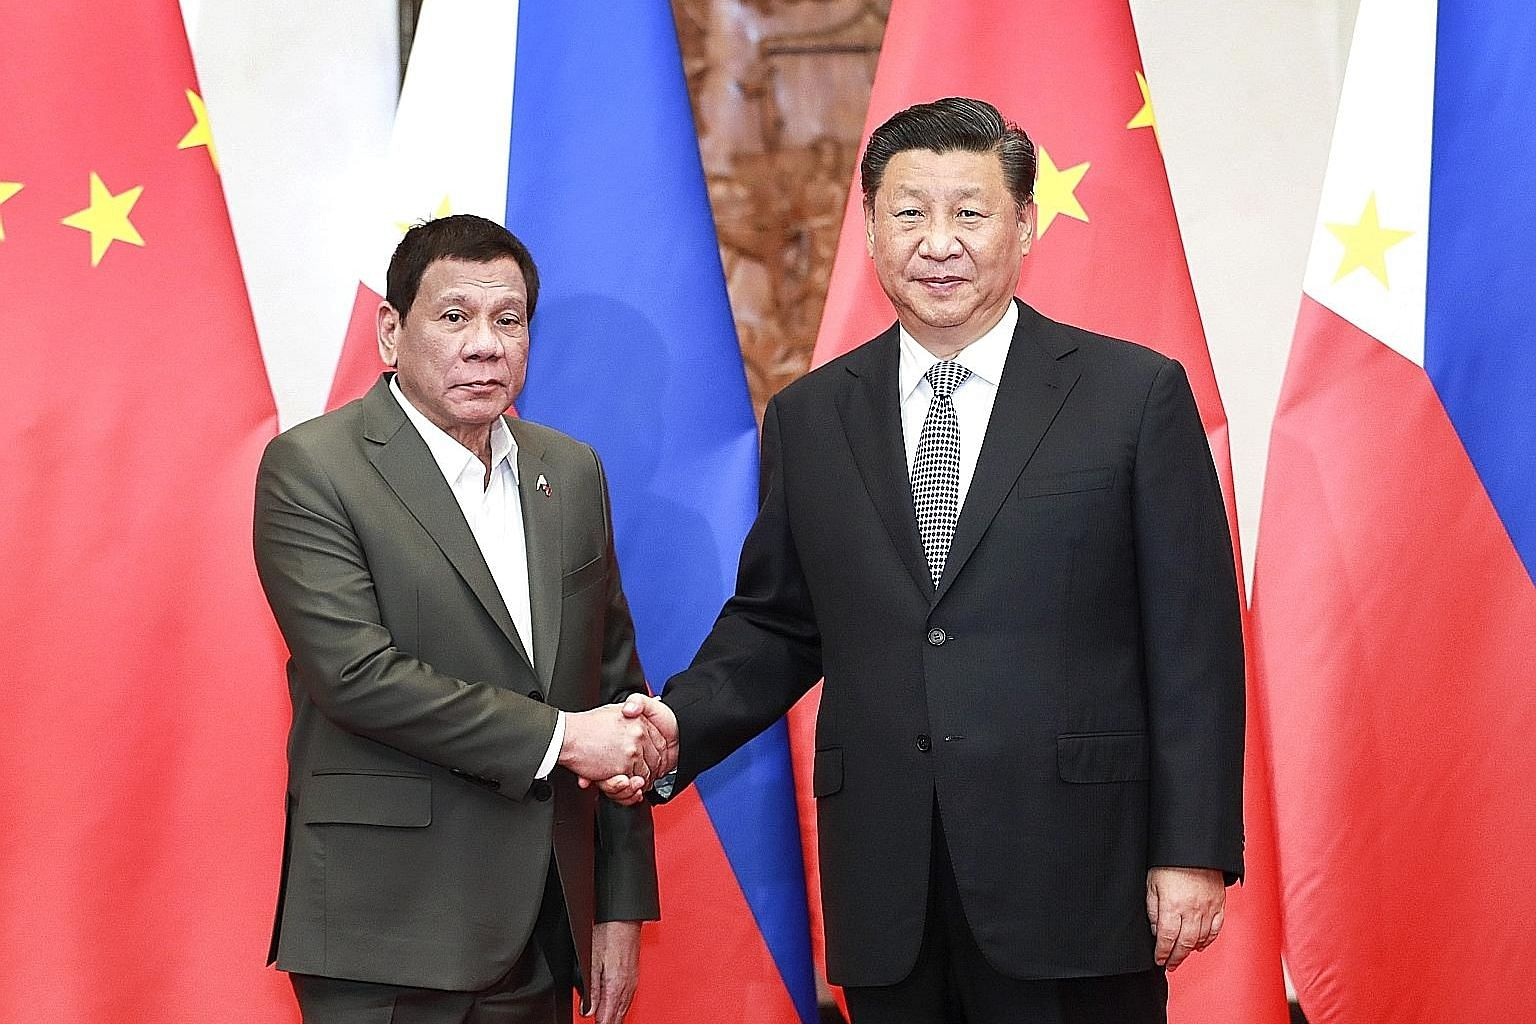 Philippine President Rodrigo Duterte (left) with Chinese President Xi Jinping at the Diaoyutai State Guesthouse in Beijing last Thursday.